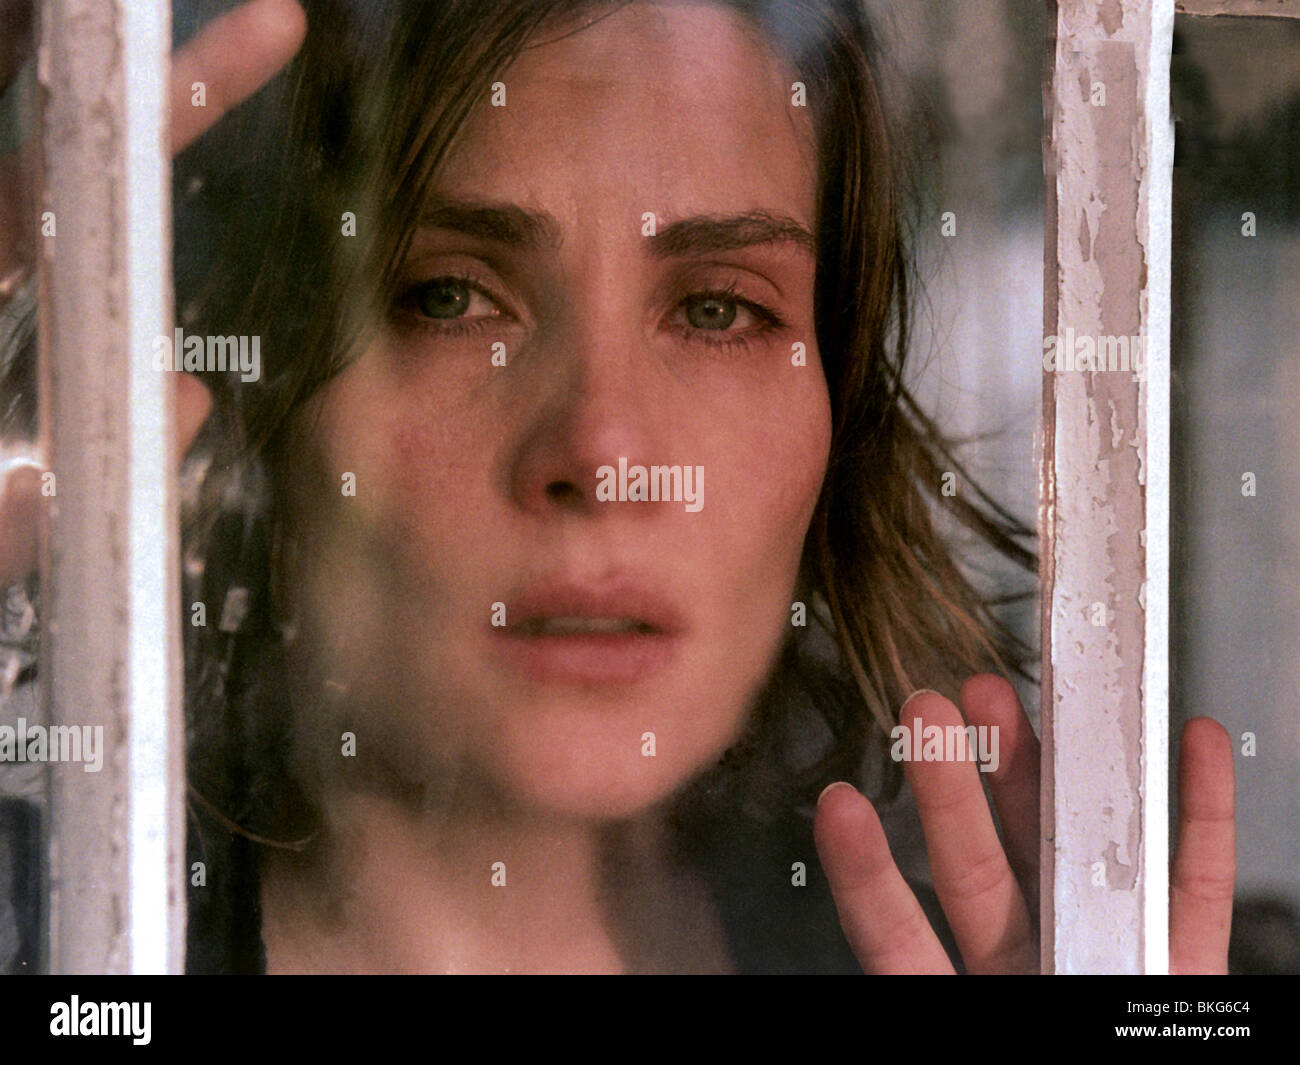 CORPS A CORPS (2003) BODY TO BODY (ALT) EMMANUELLE SEIGNER CORC 001FOH - Stock Image